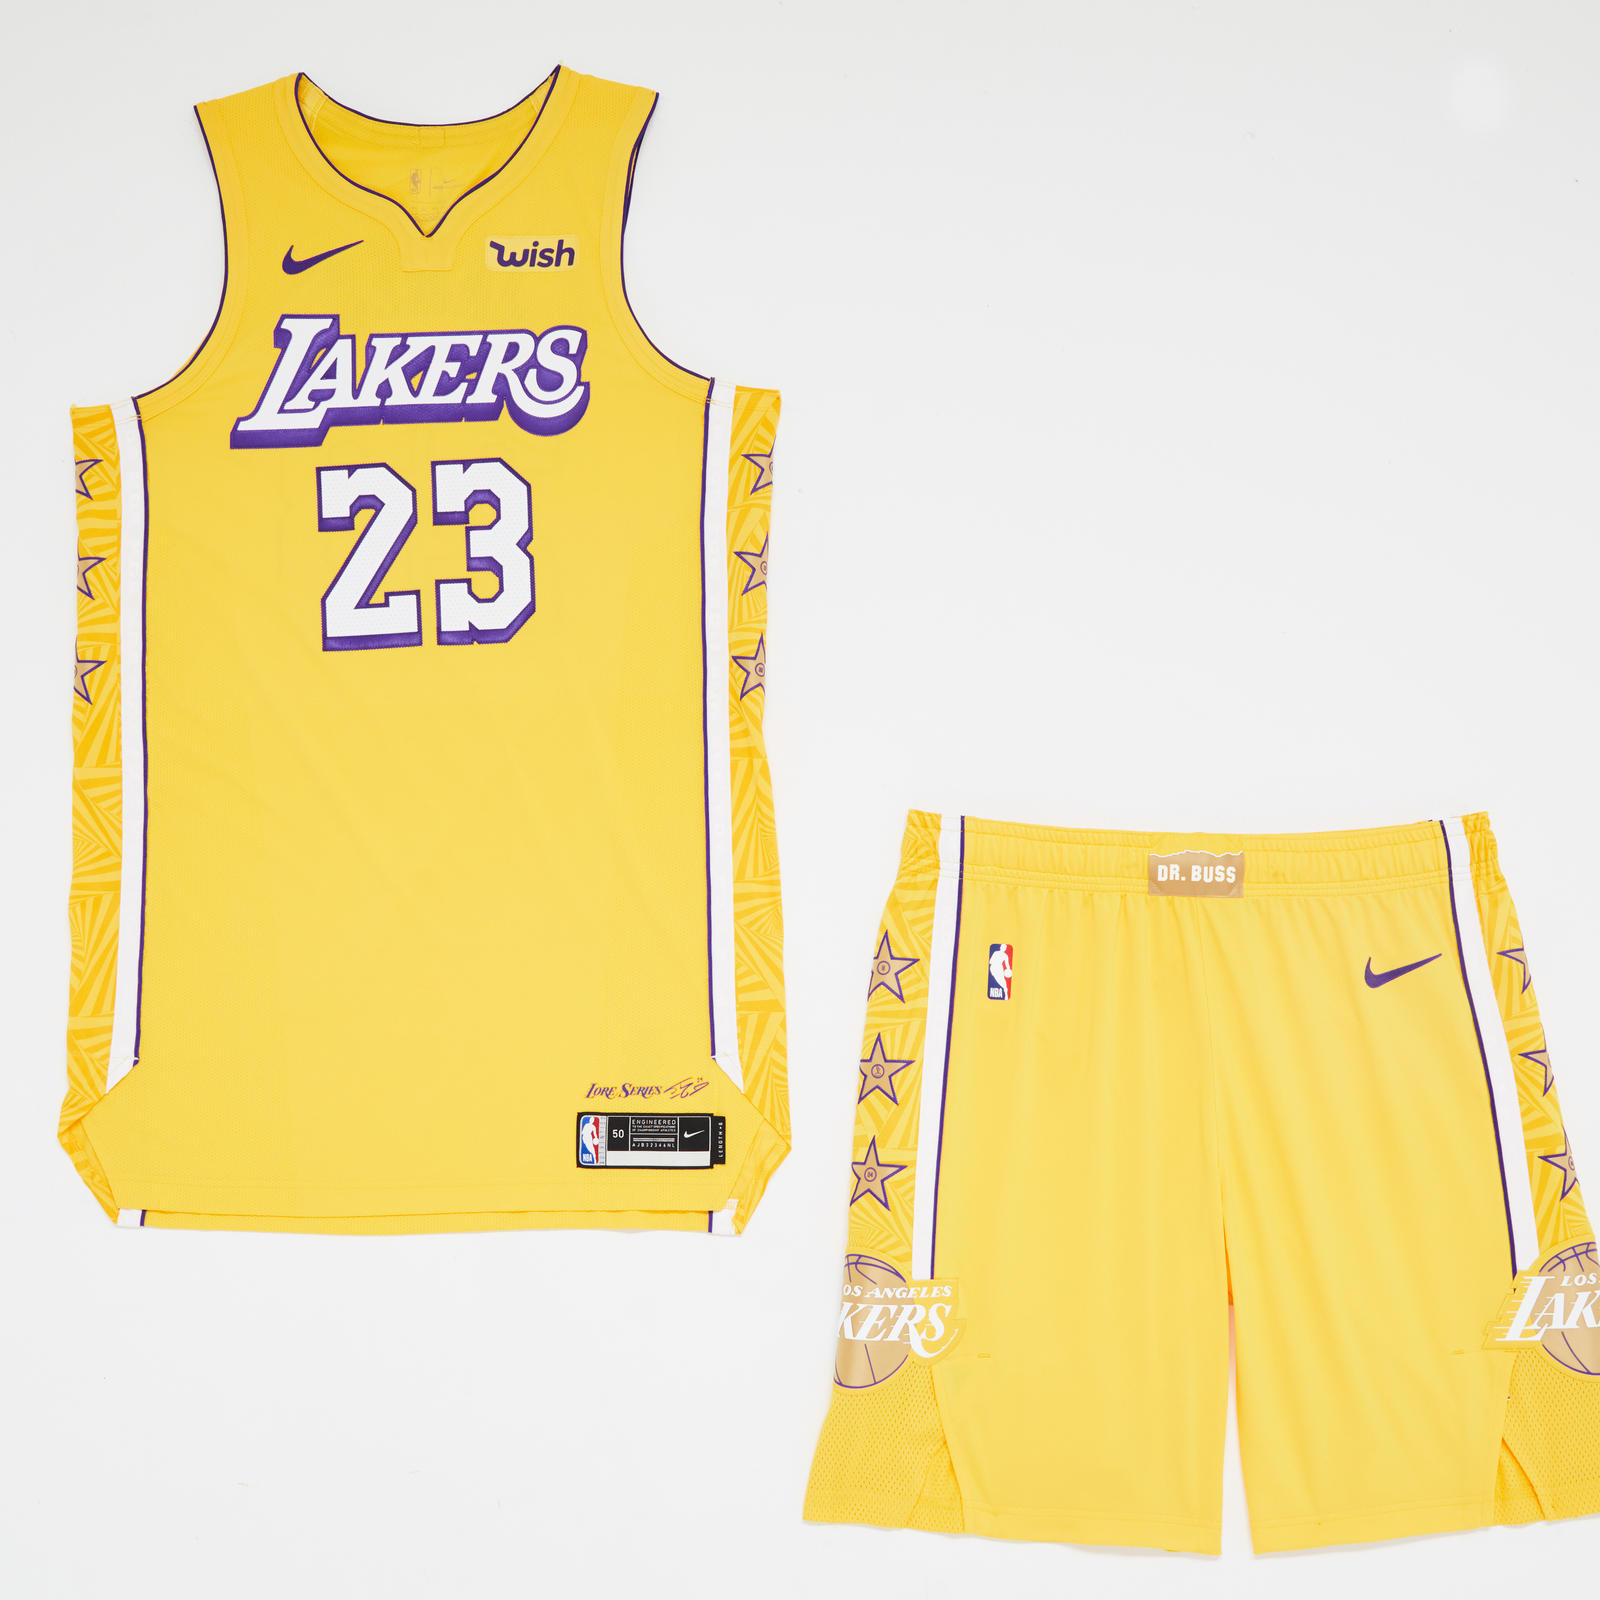 lakers new jersey city edition Off 51% - www.bashhguidelines.org